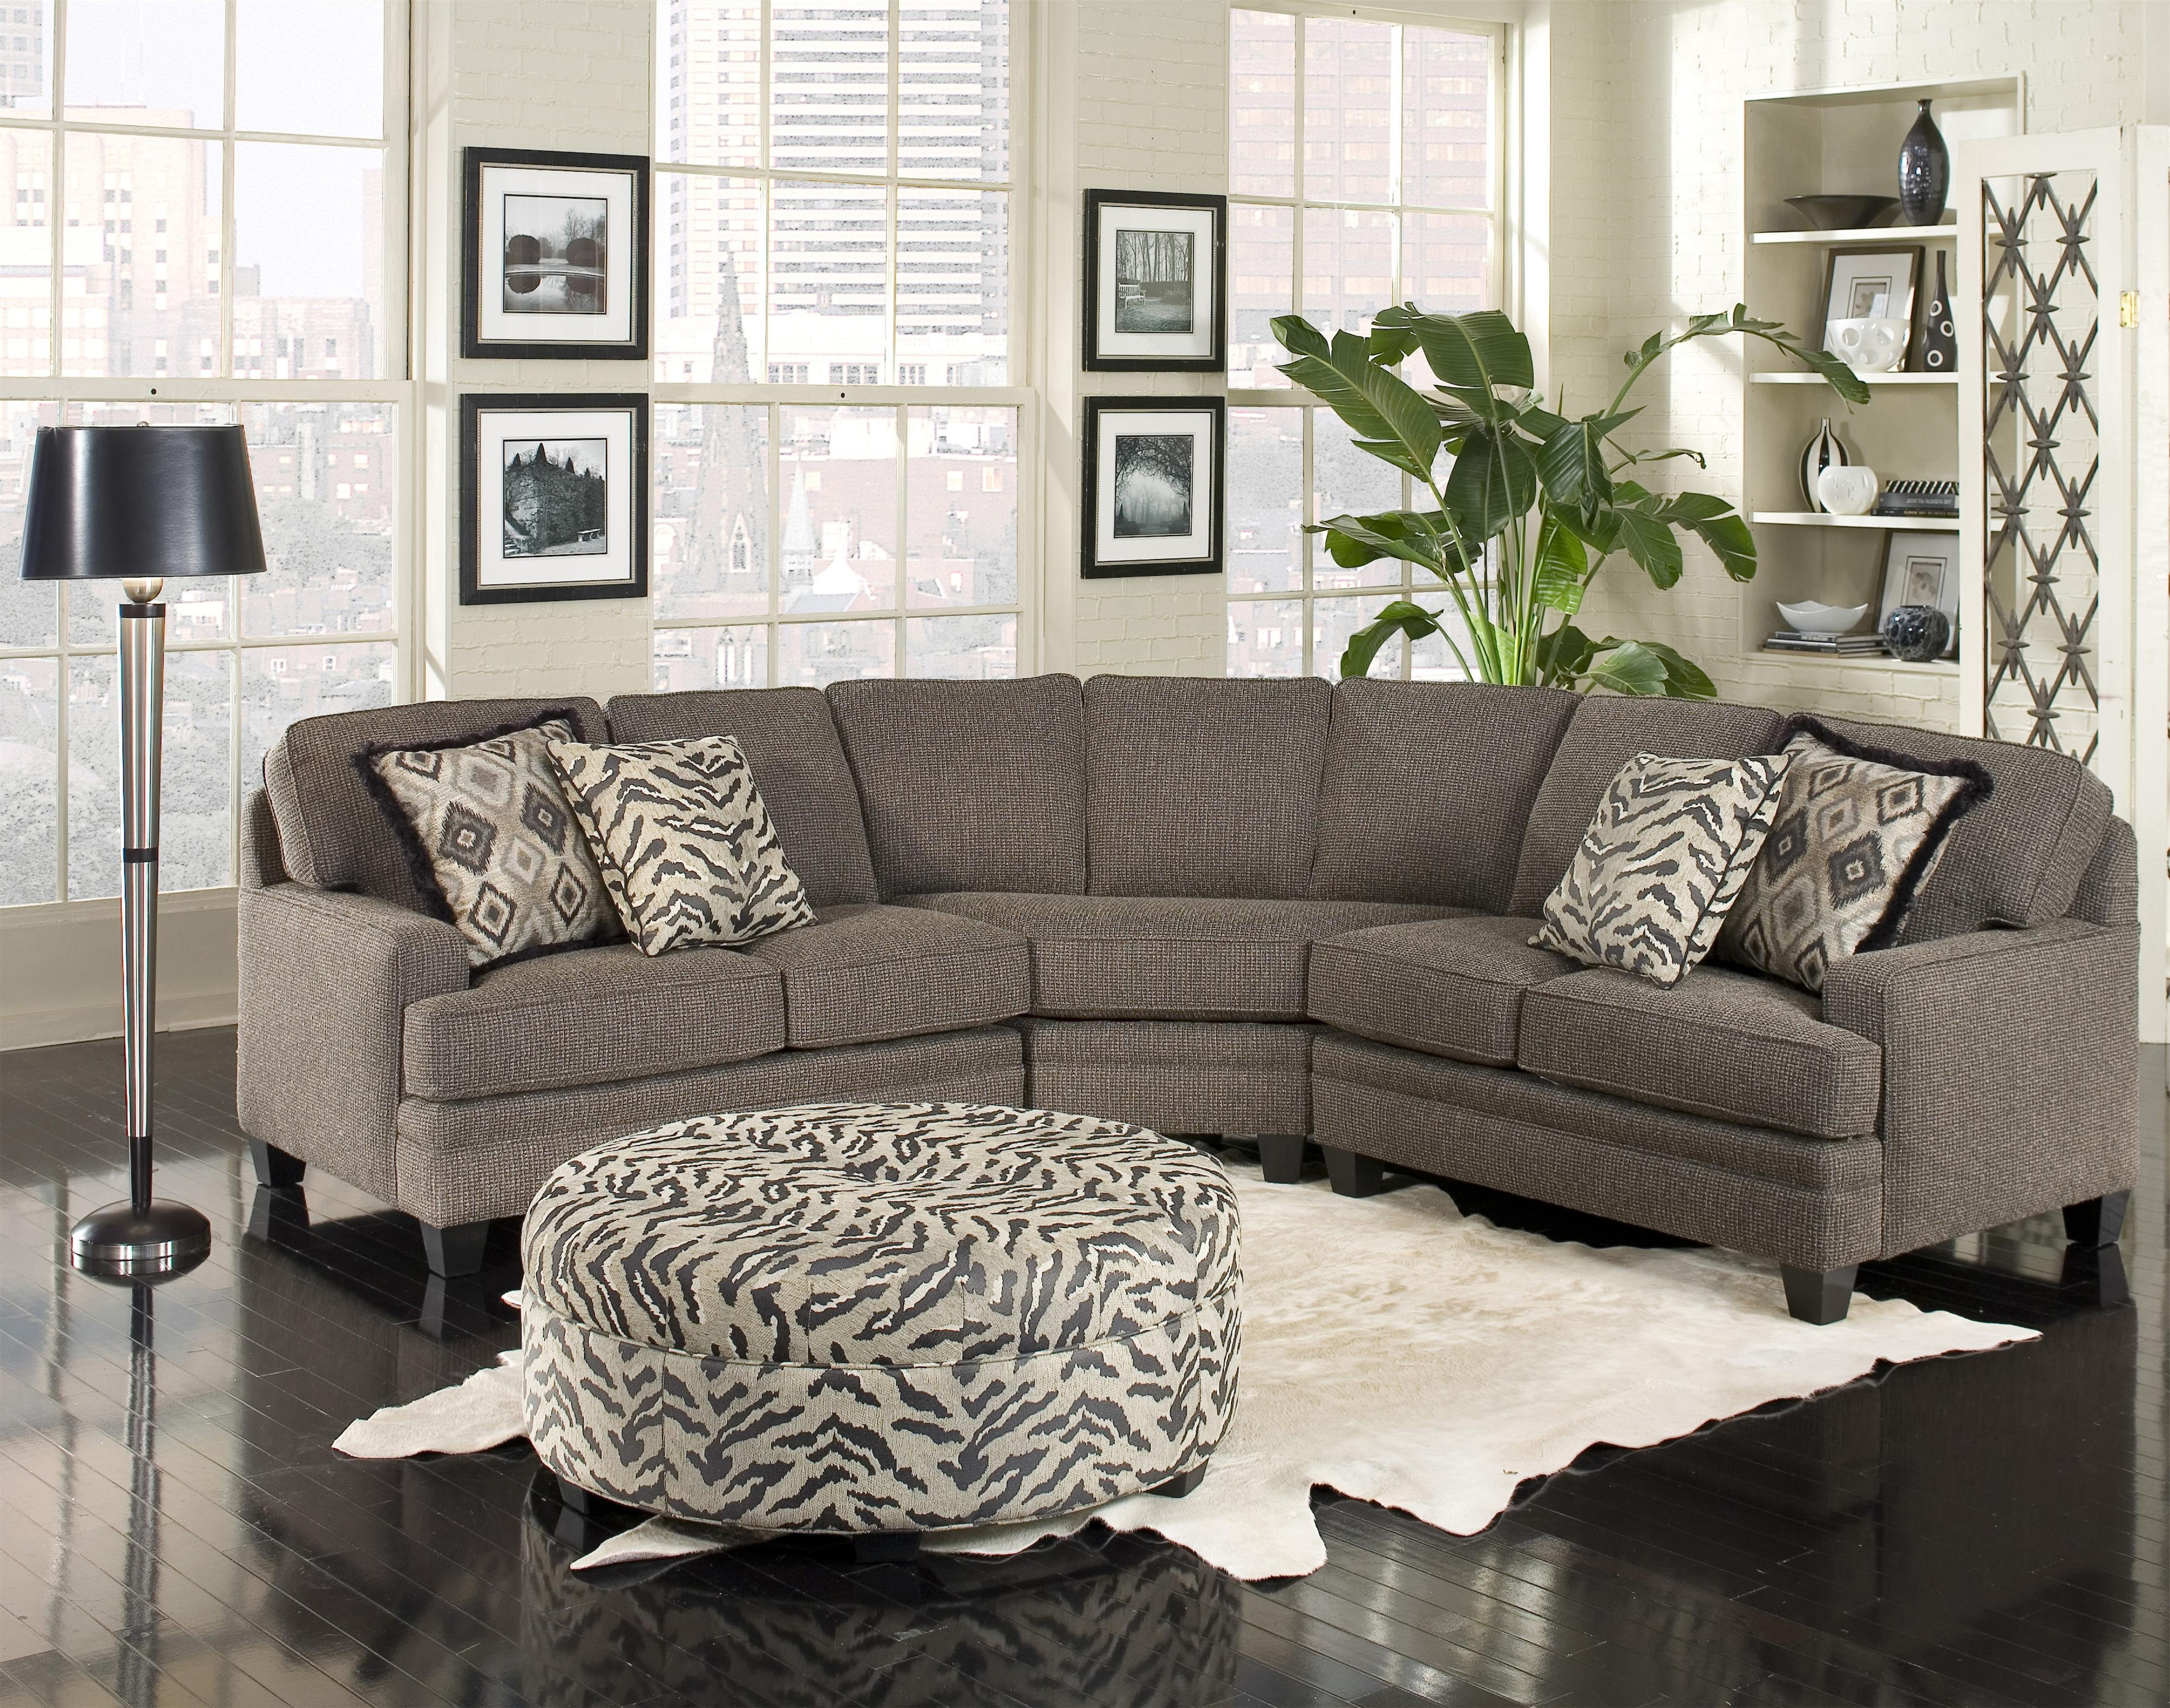 Harrisburg Pa Sectional Sofas With Most Recently Released Build Your Own (5000 Series) Five Person Sectional Sofa With (View 3 of 20)